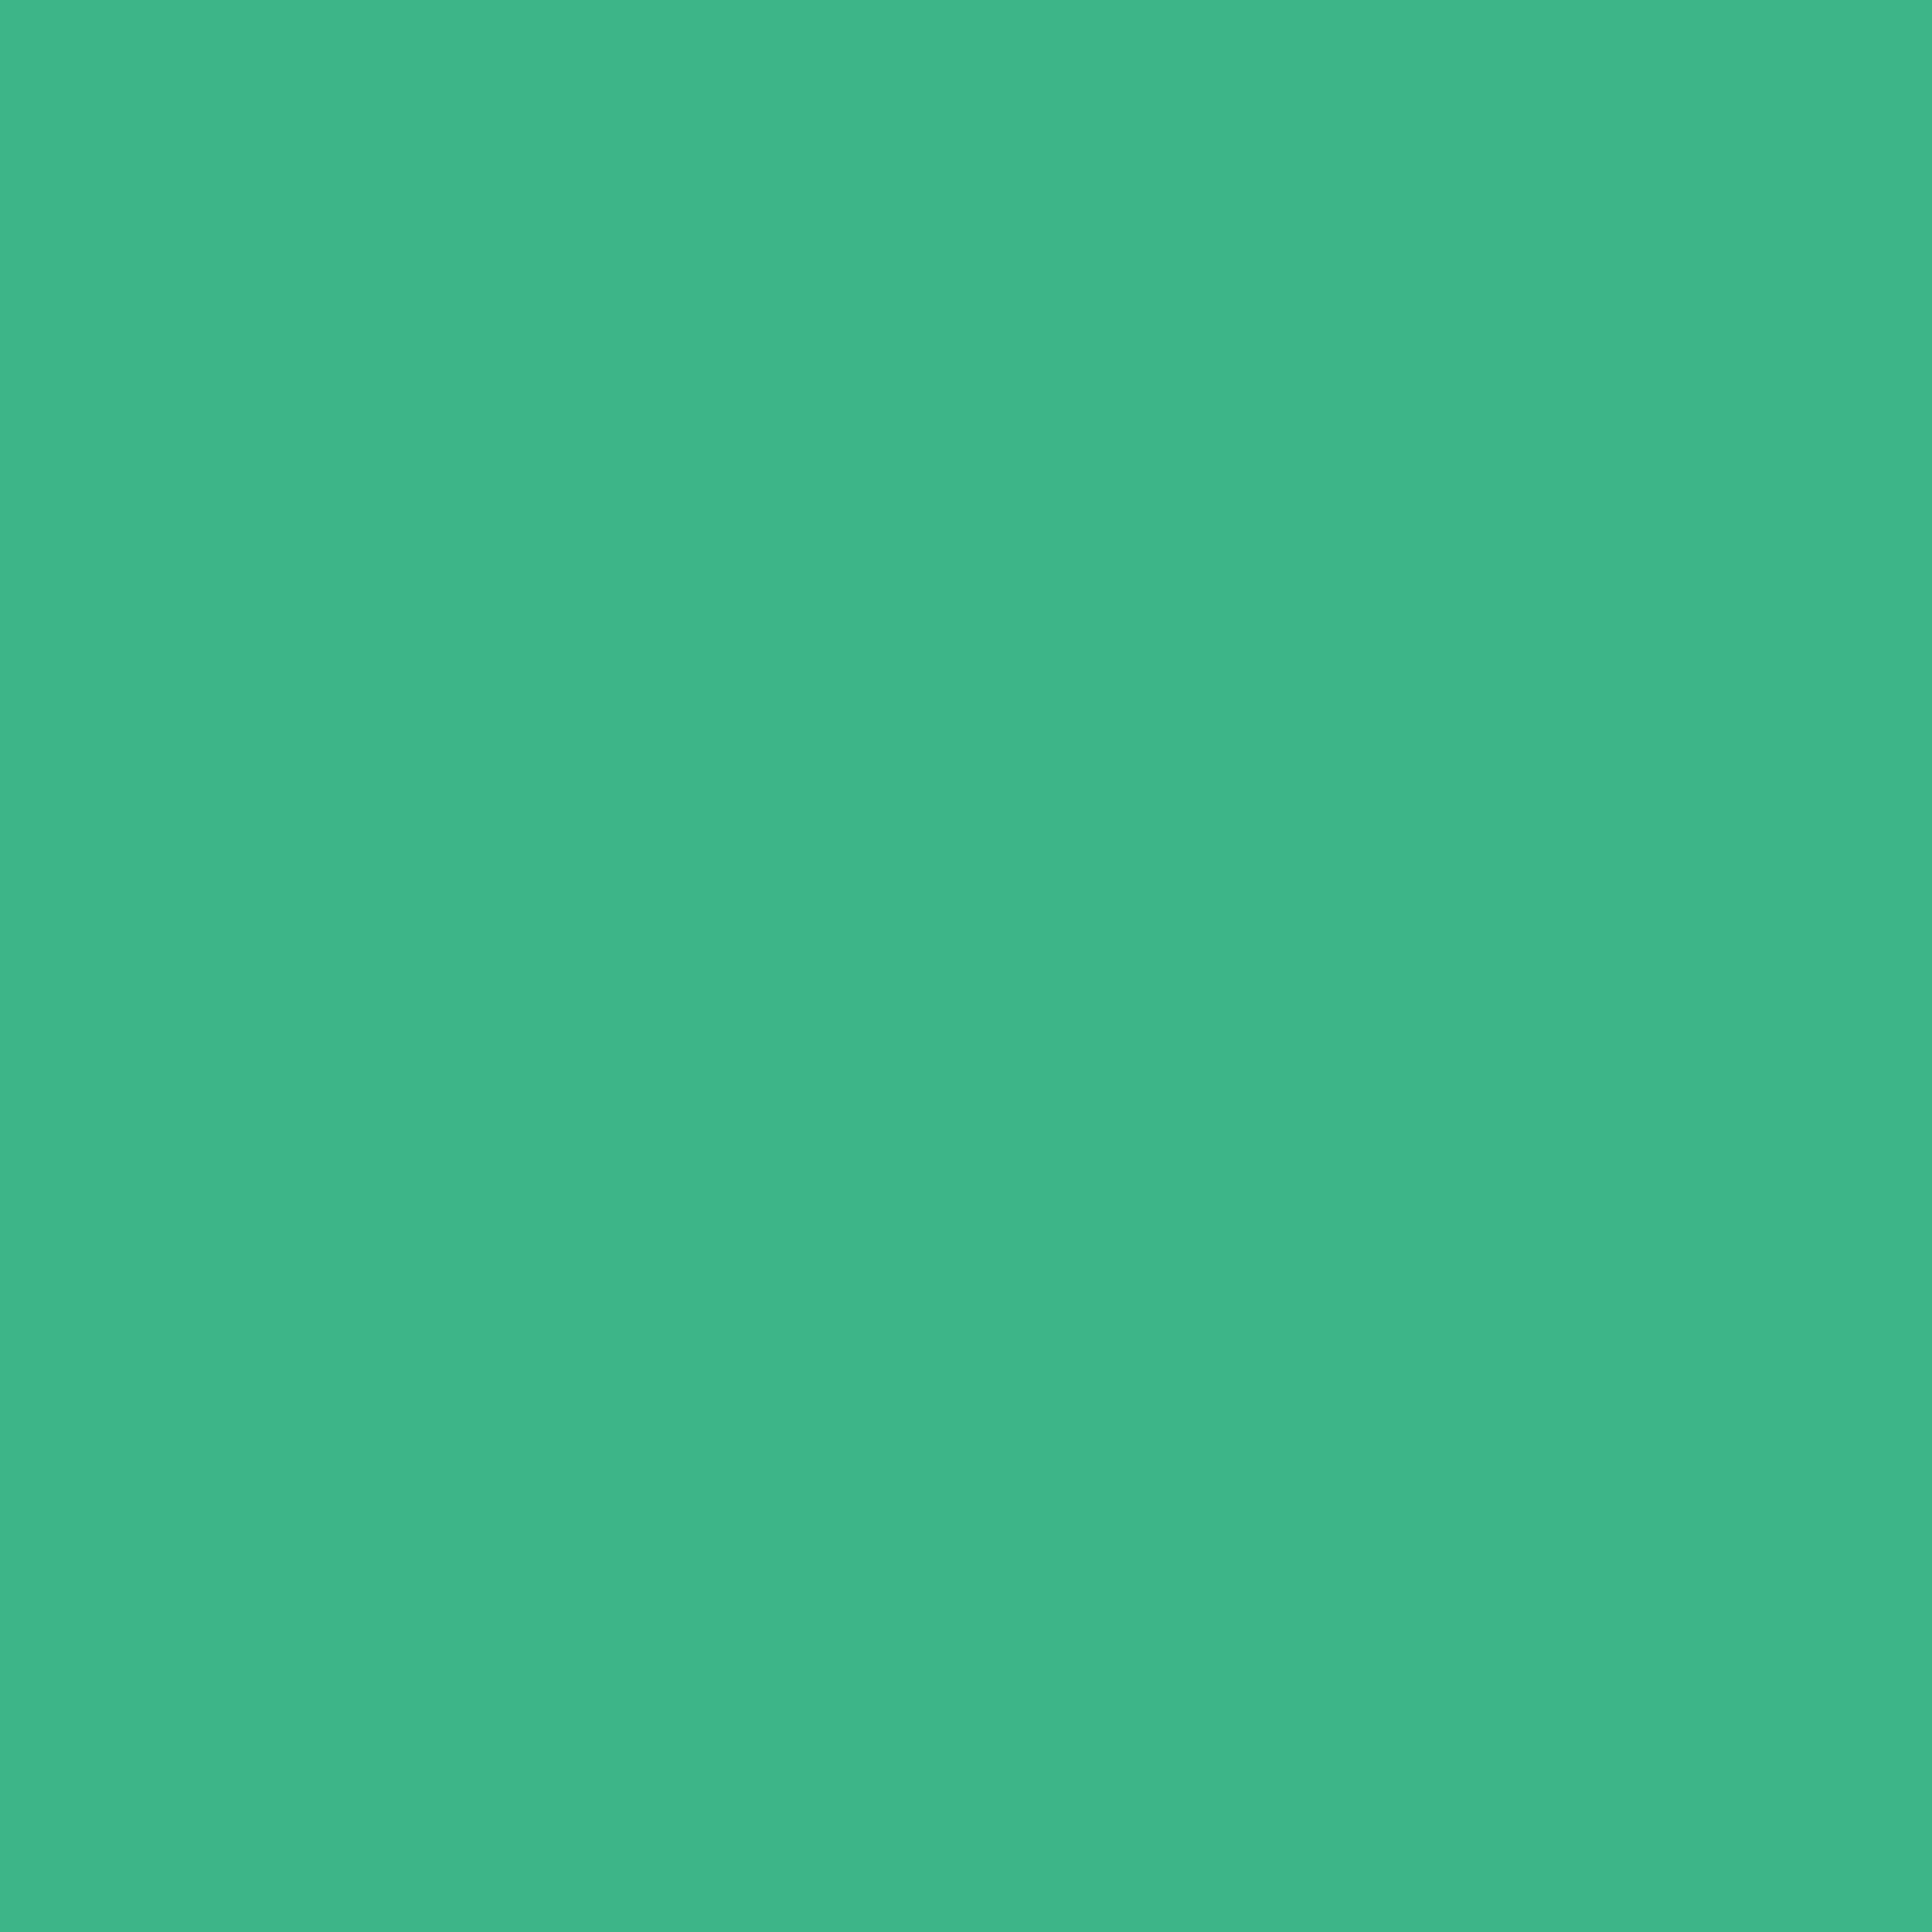 3600x3600 Mint Solid Color Background